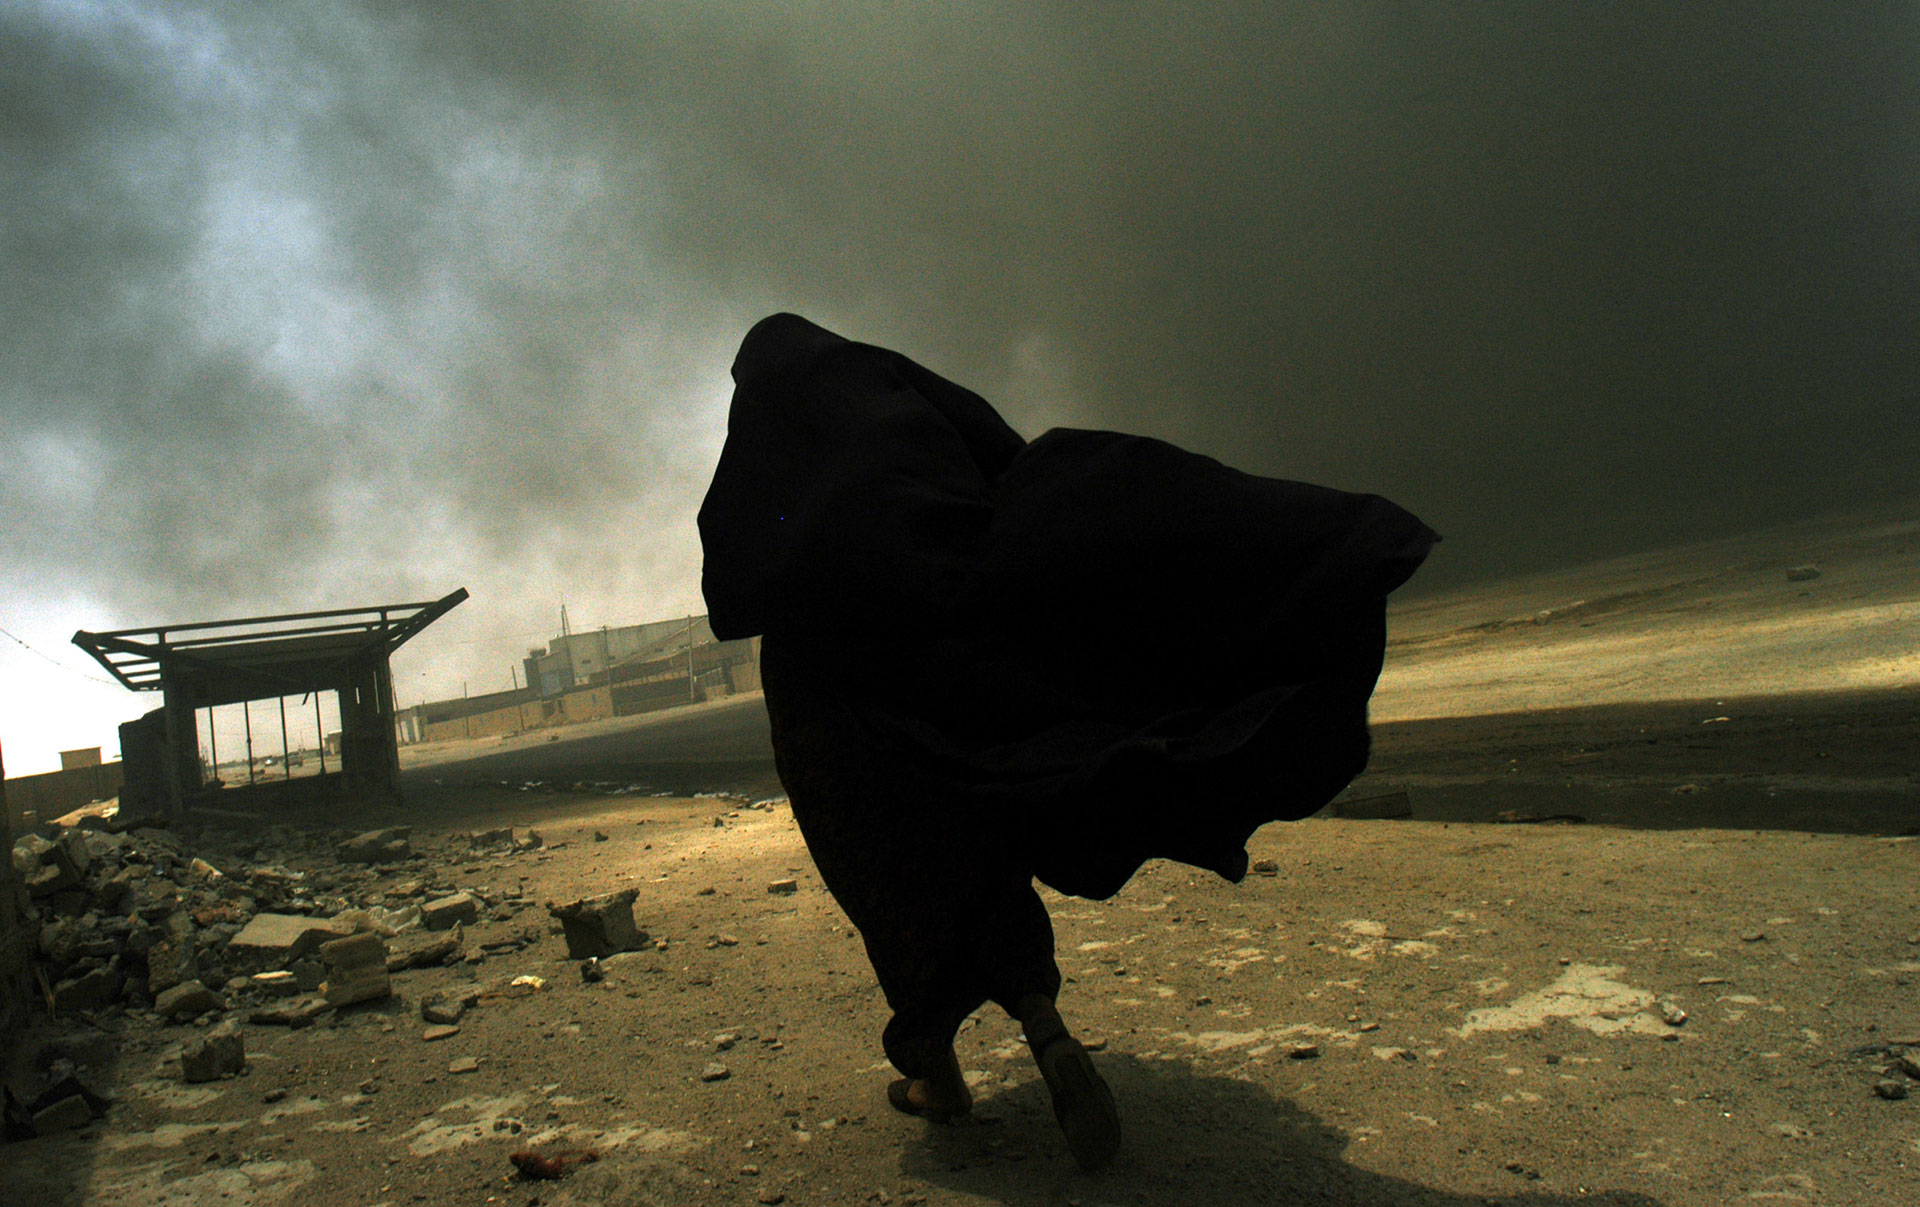 A woman in a burqa walks towards a smoking building.